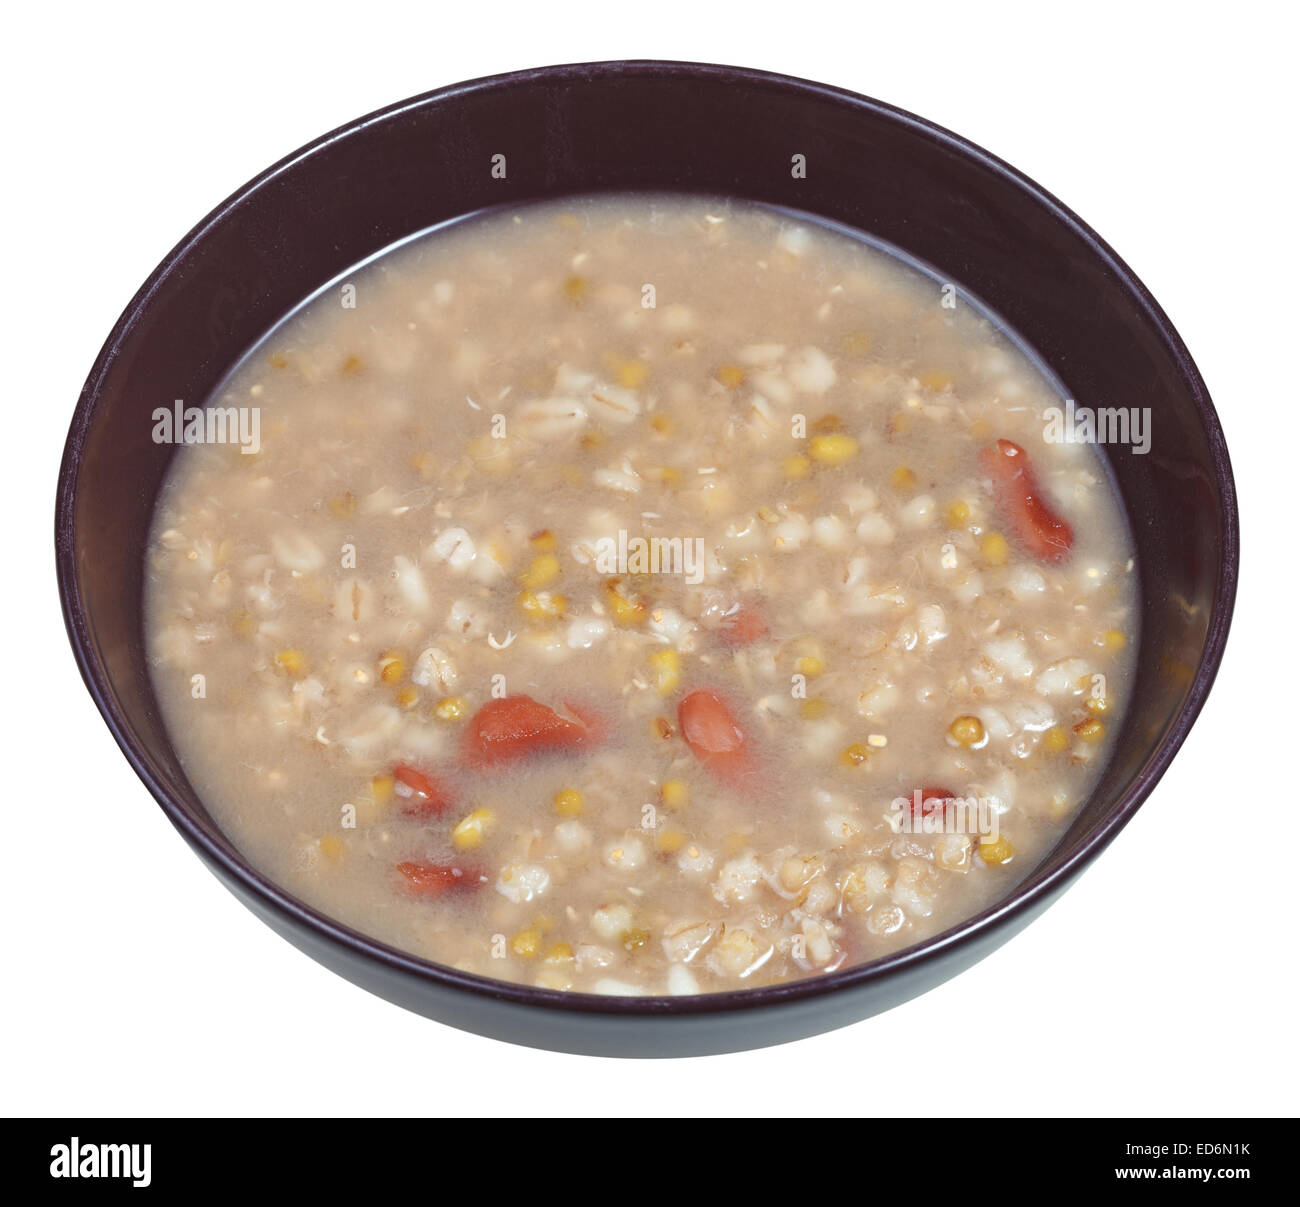 rustic bean soup in bowl isolated on white background - Stock Image